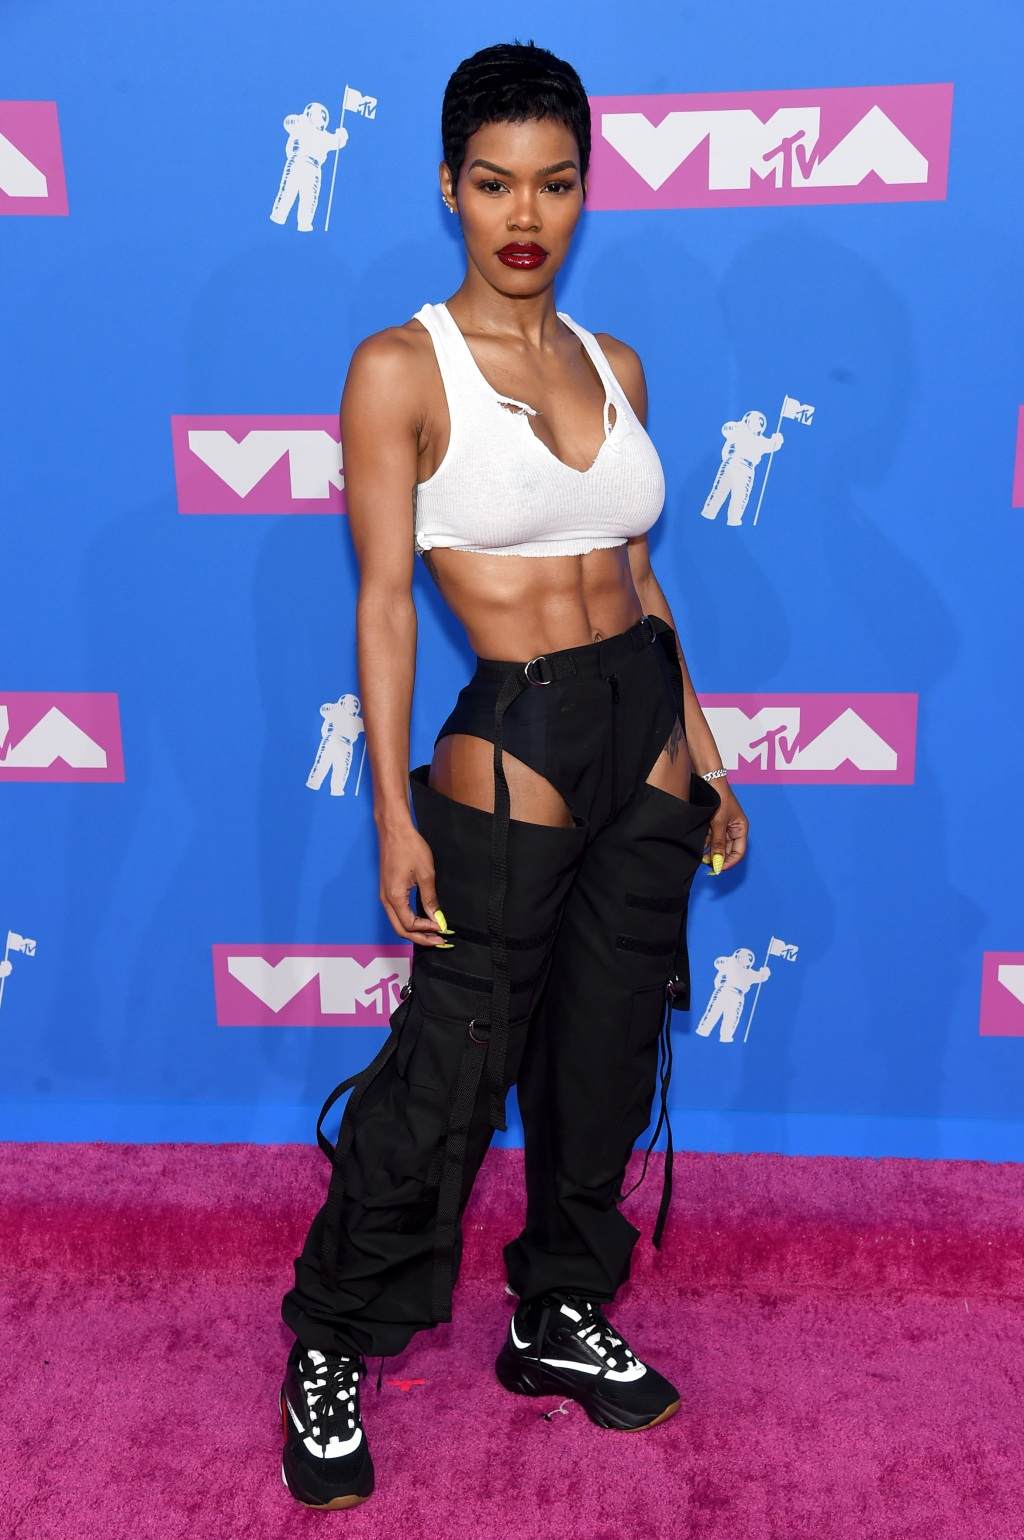 Teyana Taylor attends the 2018 MTV Video Music Awards at Radio City Music Hall on August 20, 2018 in New York City. (Photo by Jamie McCarthy/Getty Images)